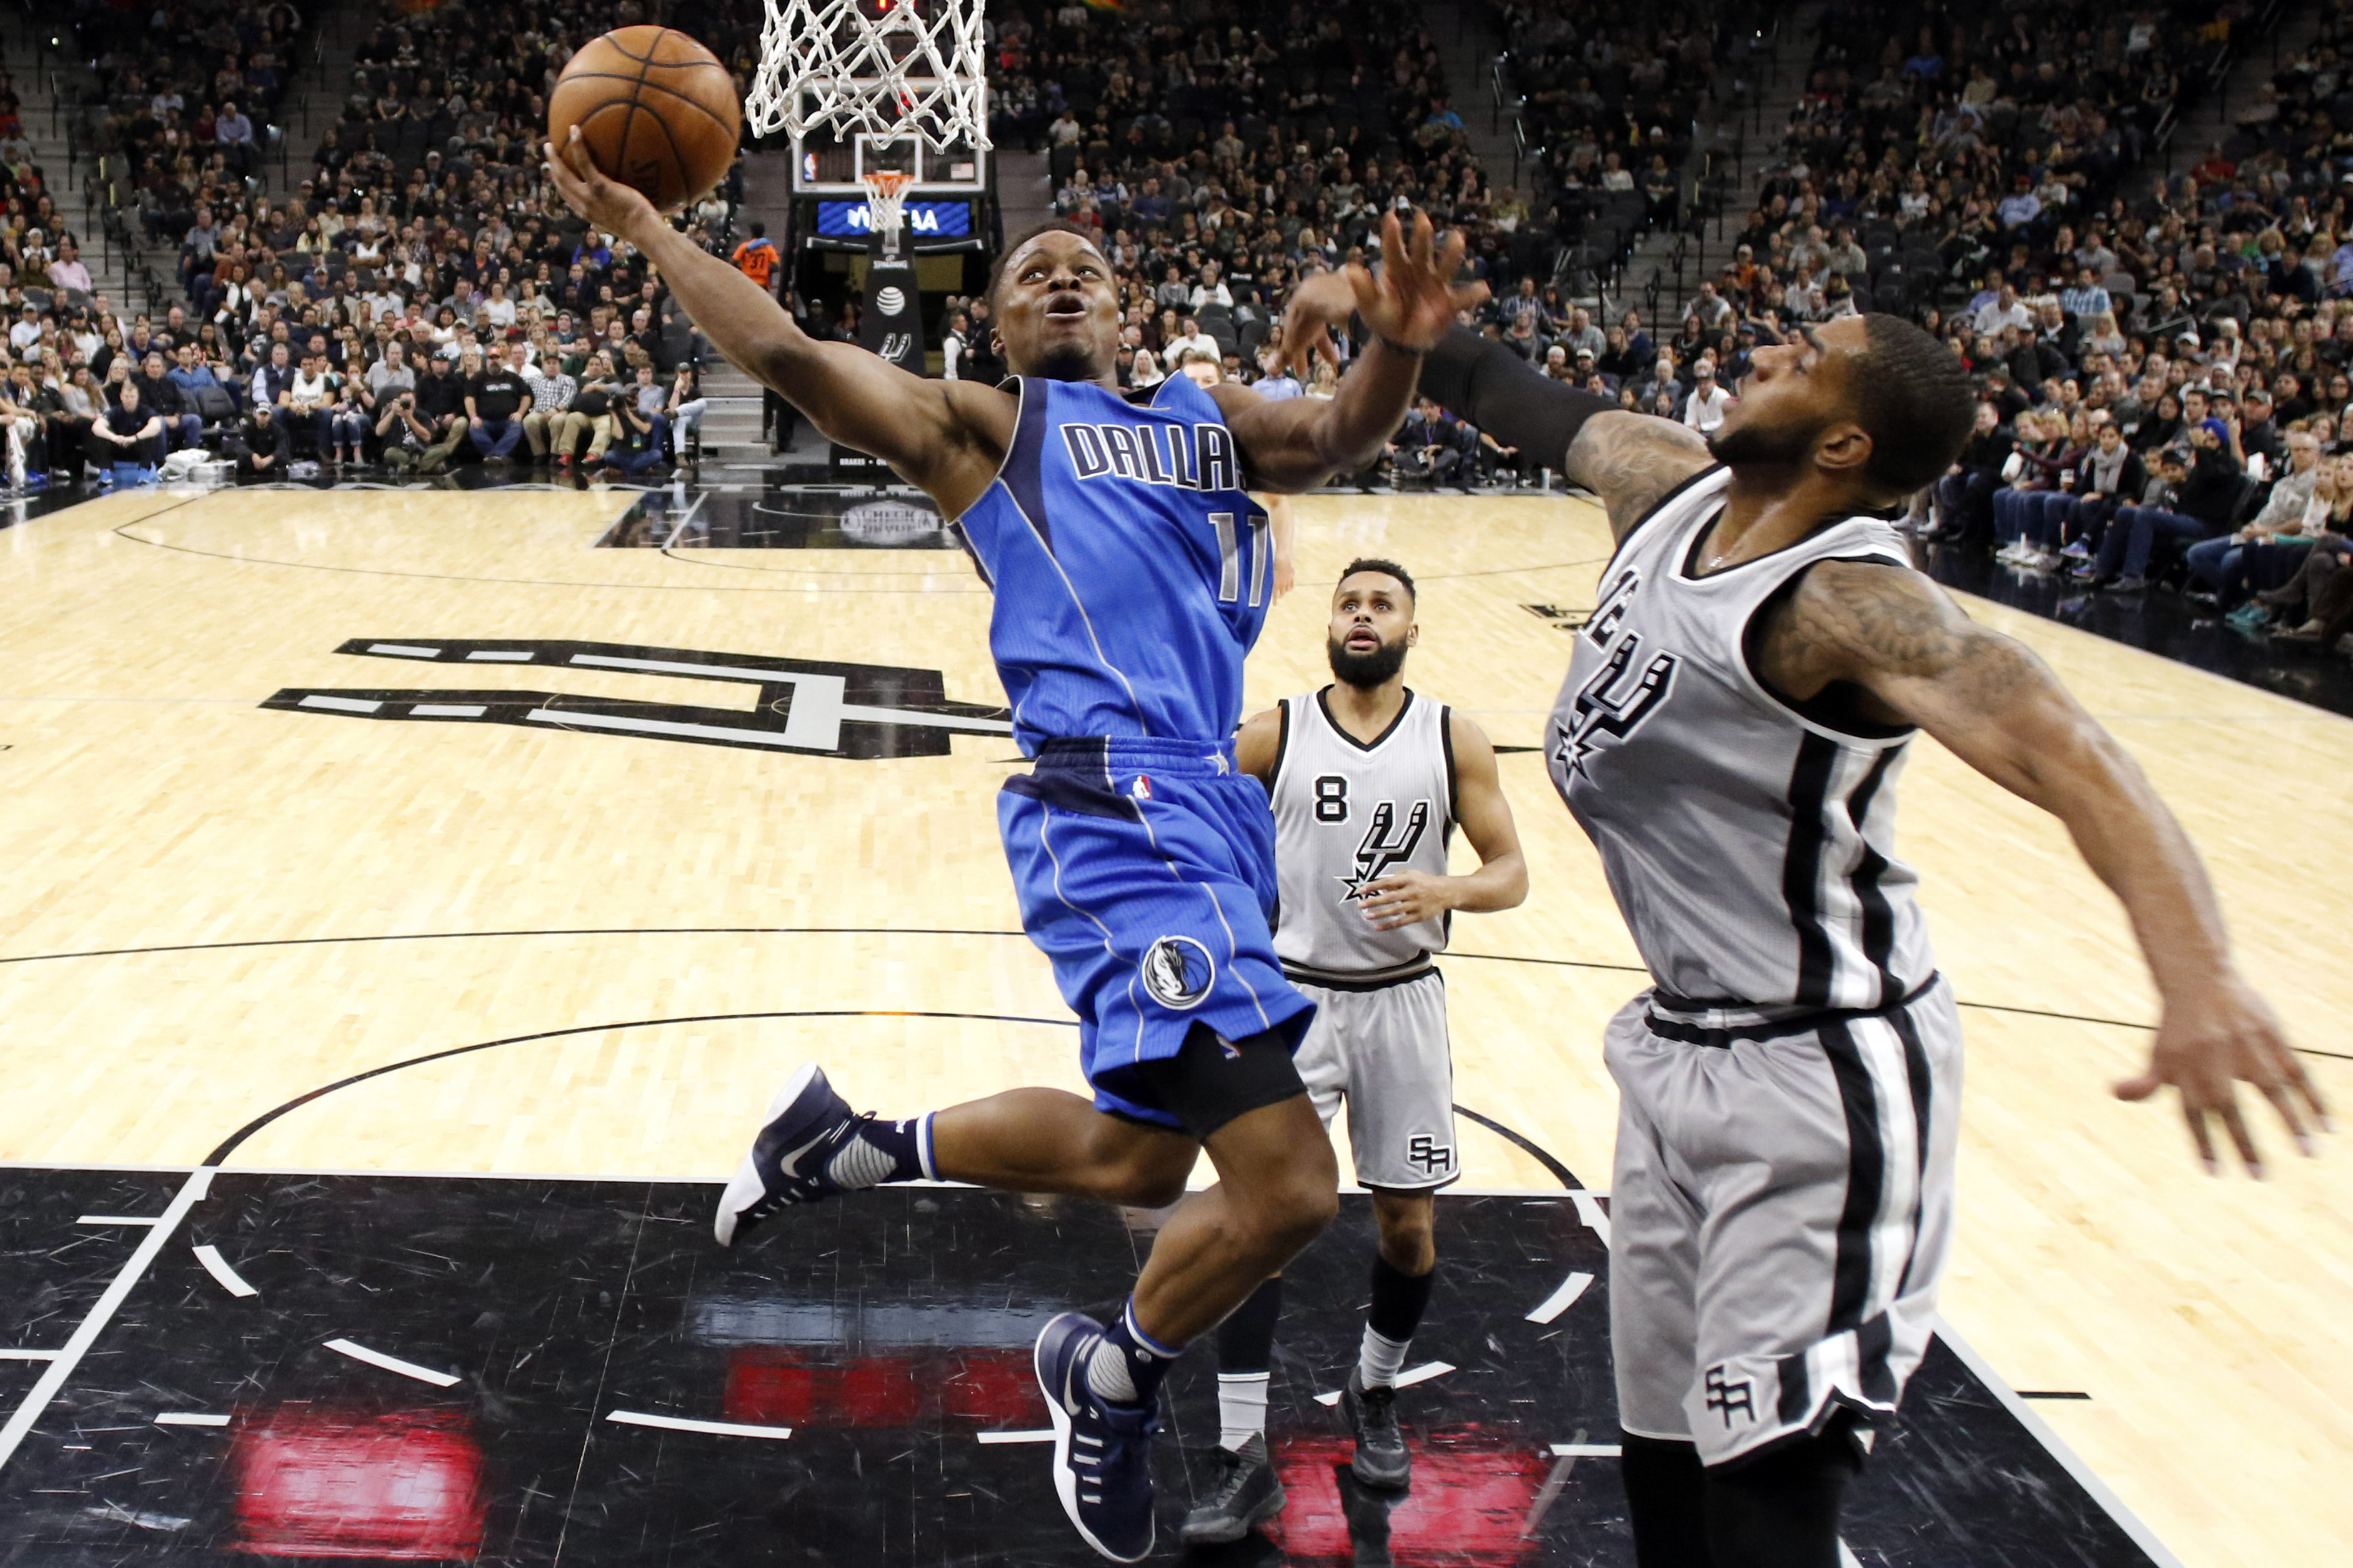 Jan 29, 2017; San Antonio, TX, USA; Dallas Mavericks guard Yogi Ferrell (11) shoots the ball past San Antonio Spurs power forward LaMarcus Aldridge (12) during the second half at AT&T Center. Mavericks won 105-101. Mandatory Credit: Soobum Im-USA TODAY Sports